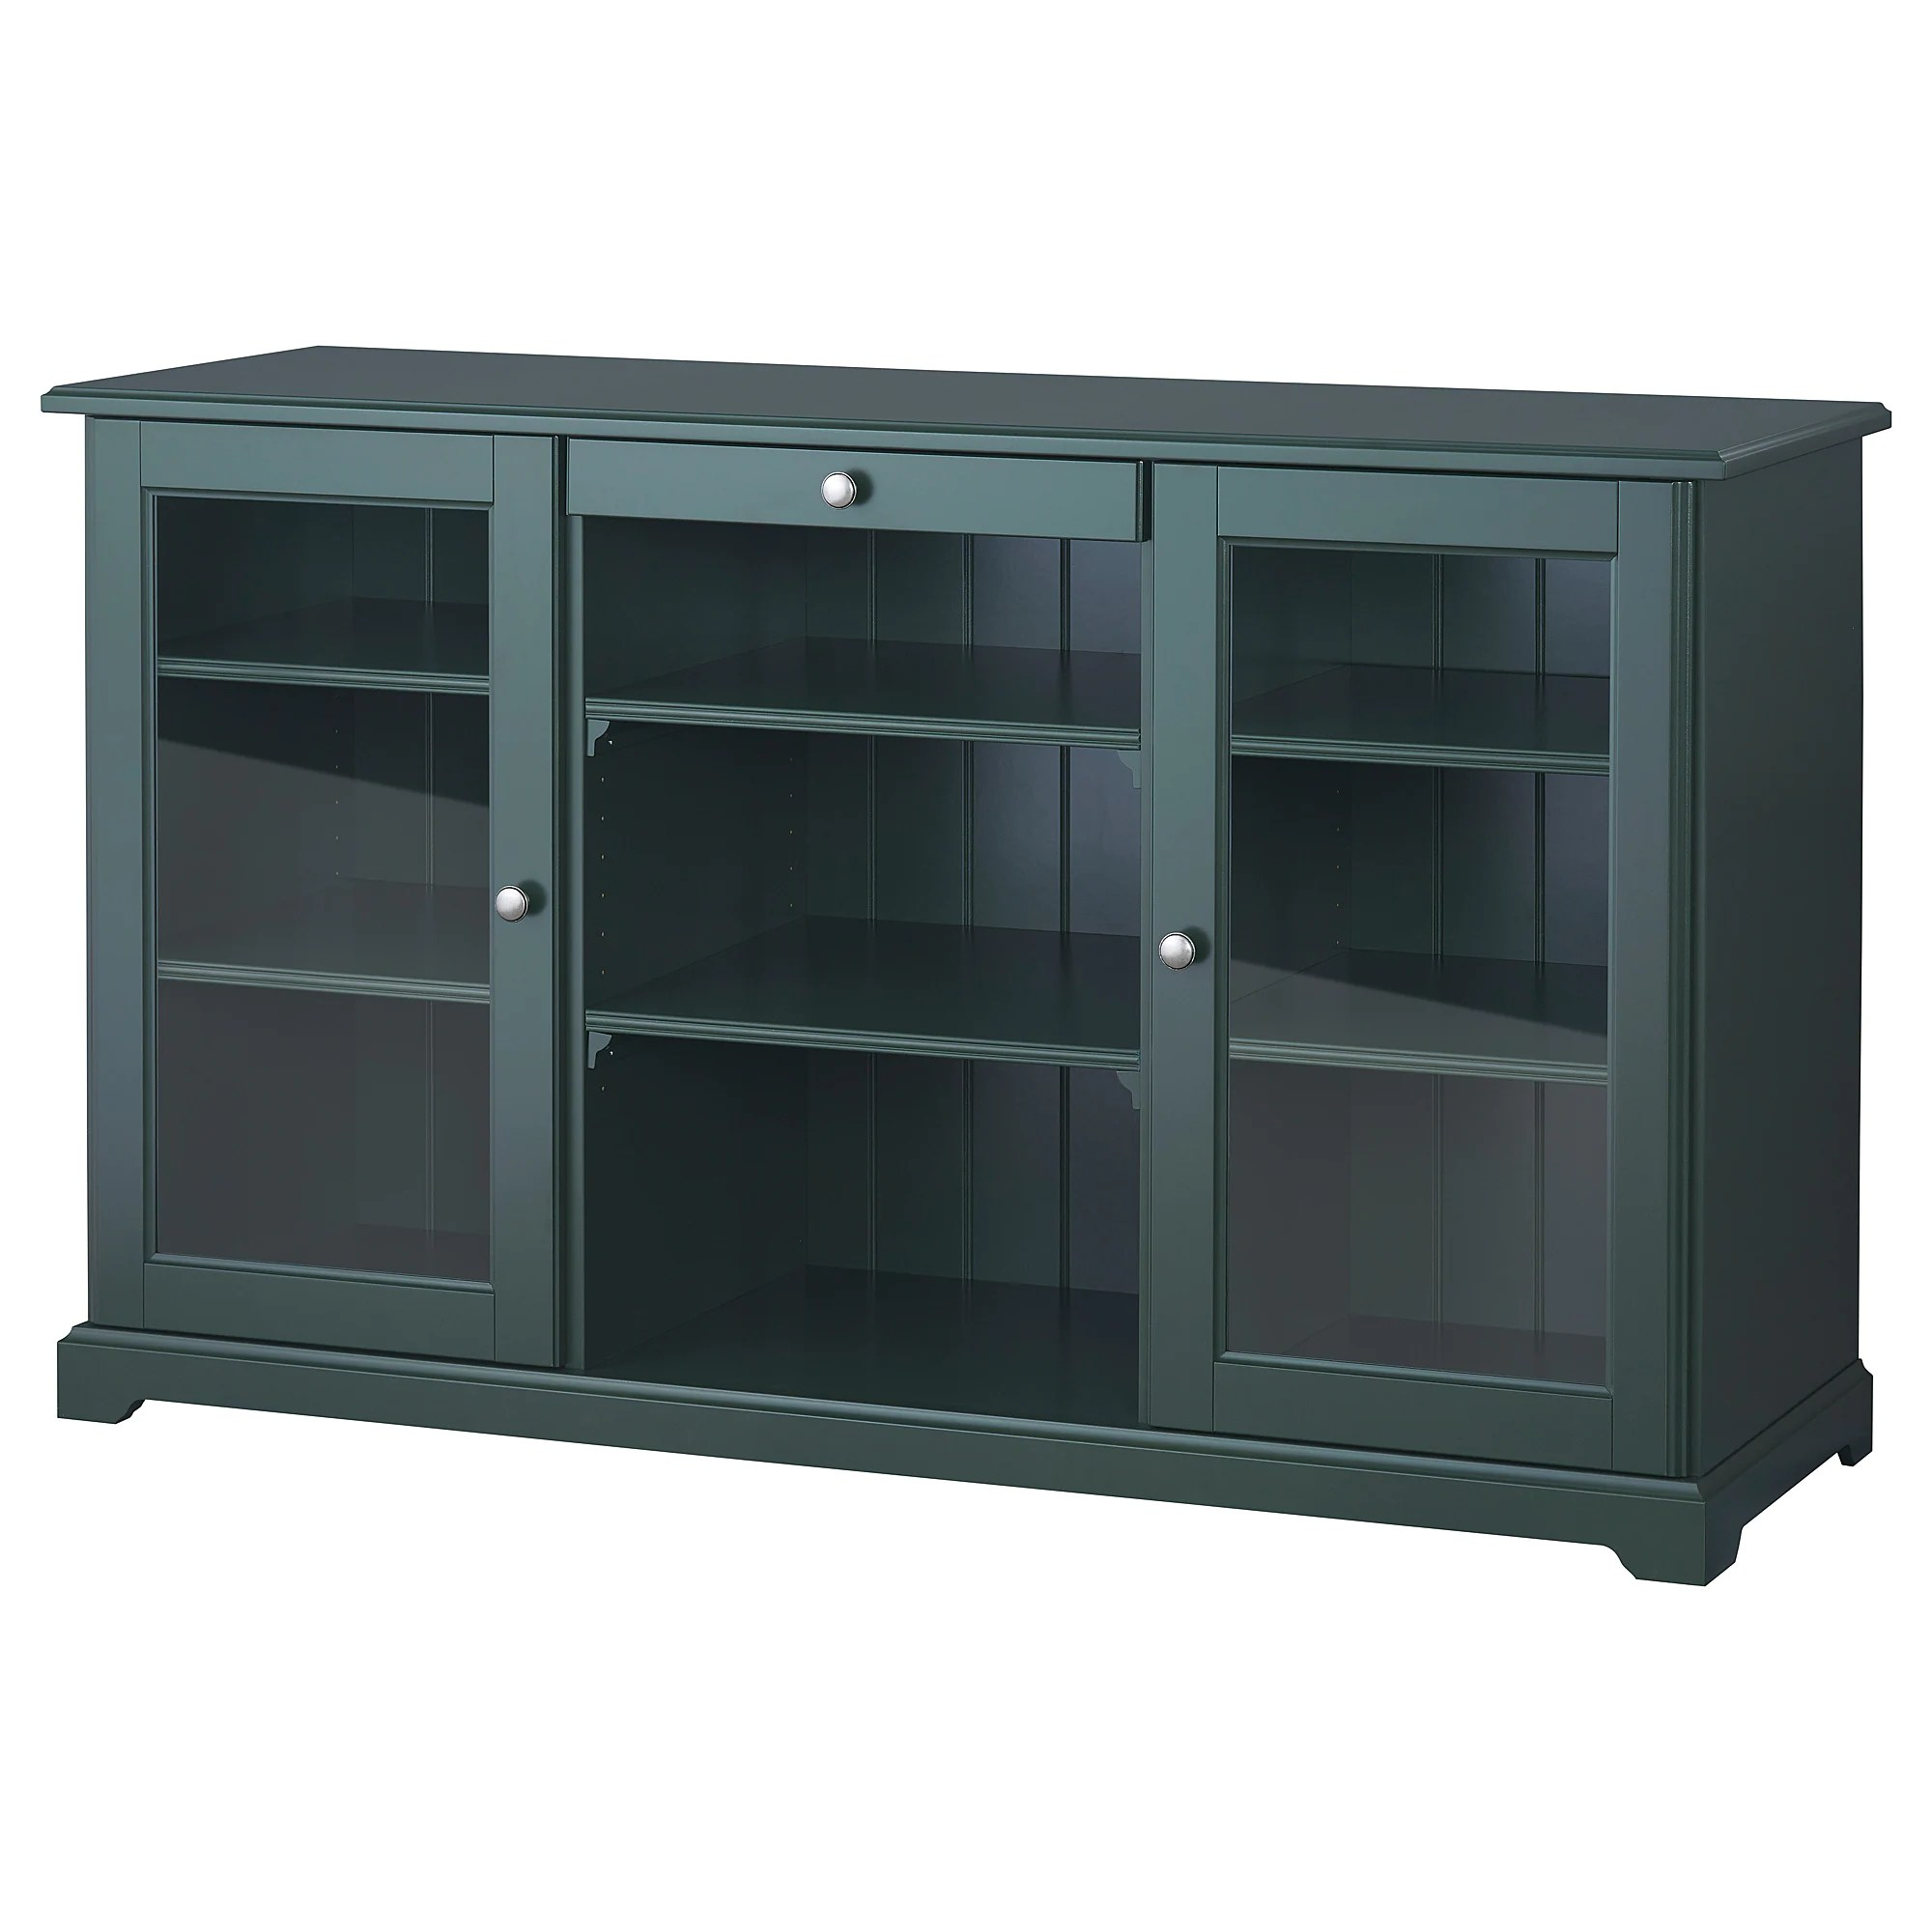 Cuisine Gris Turquoise Ikea Liatorp Sideboard Dark Olive Green